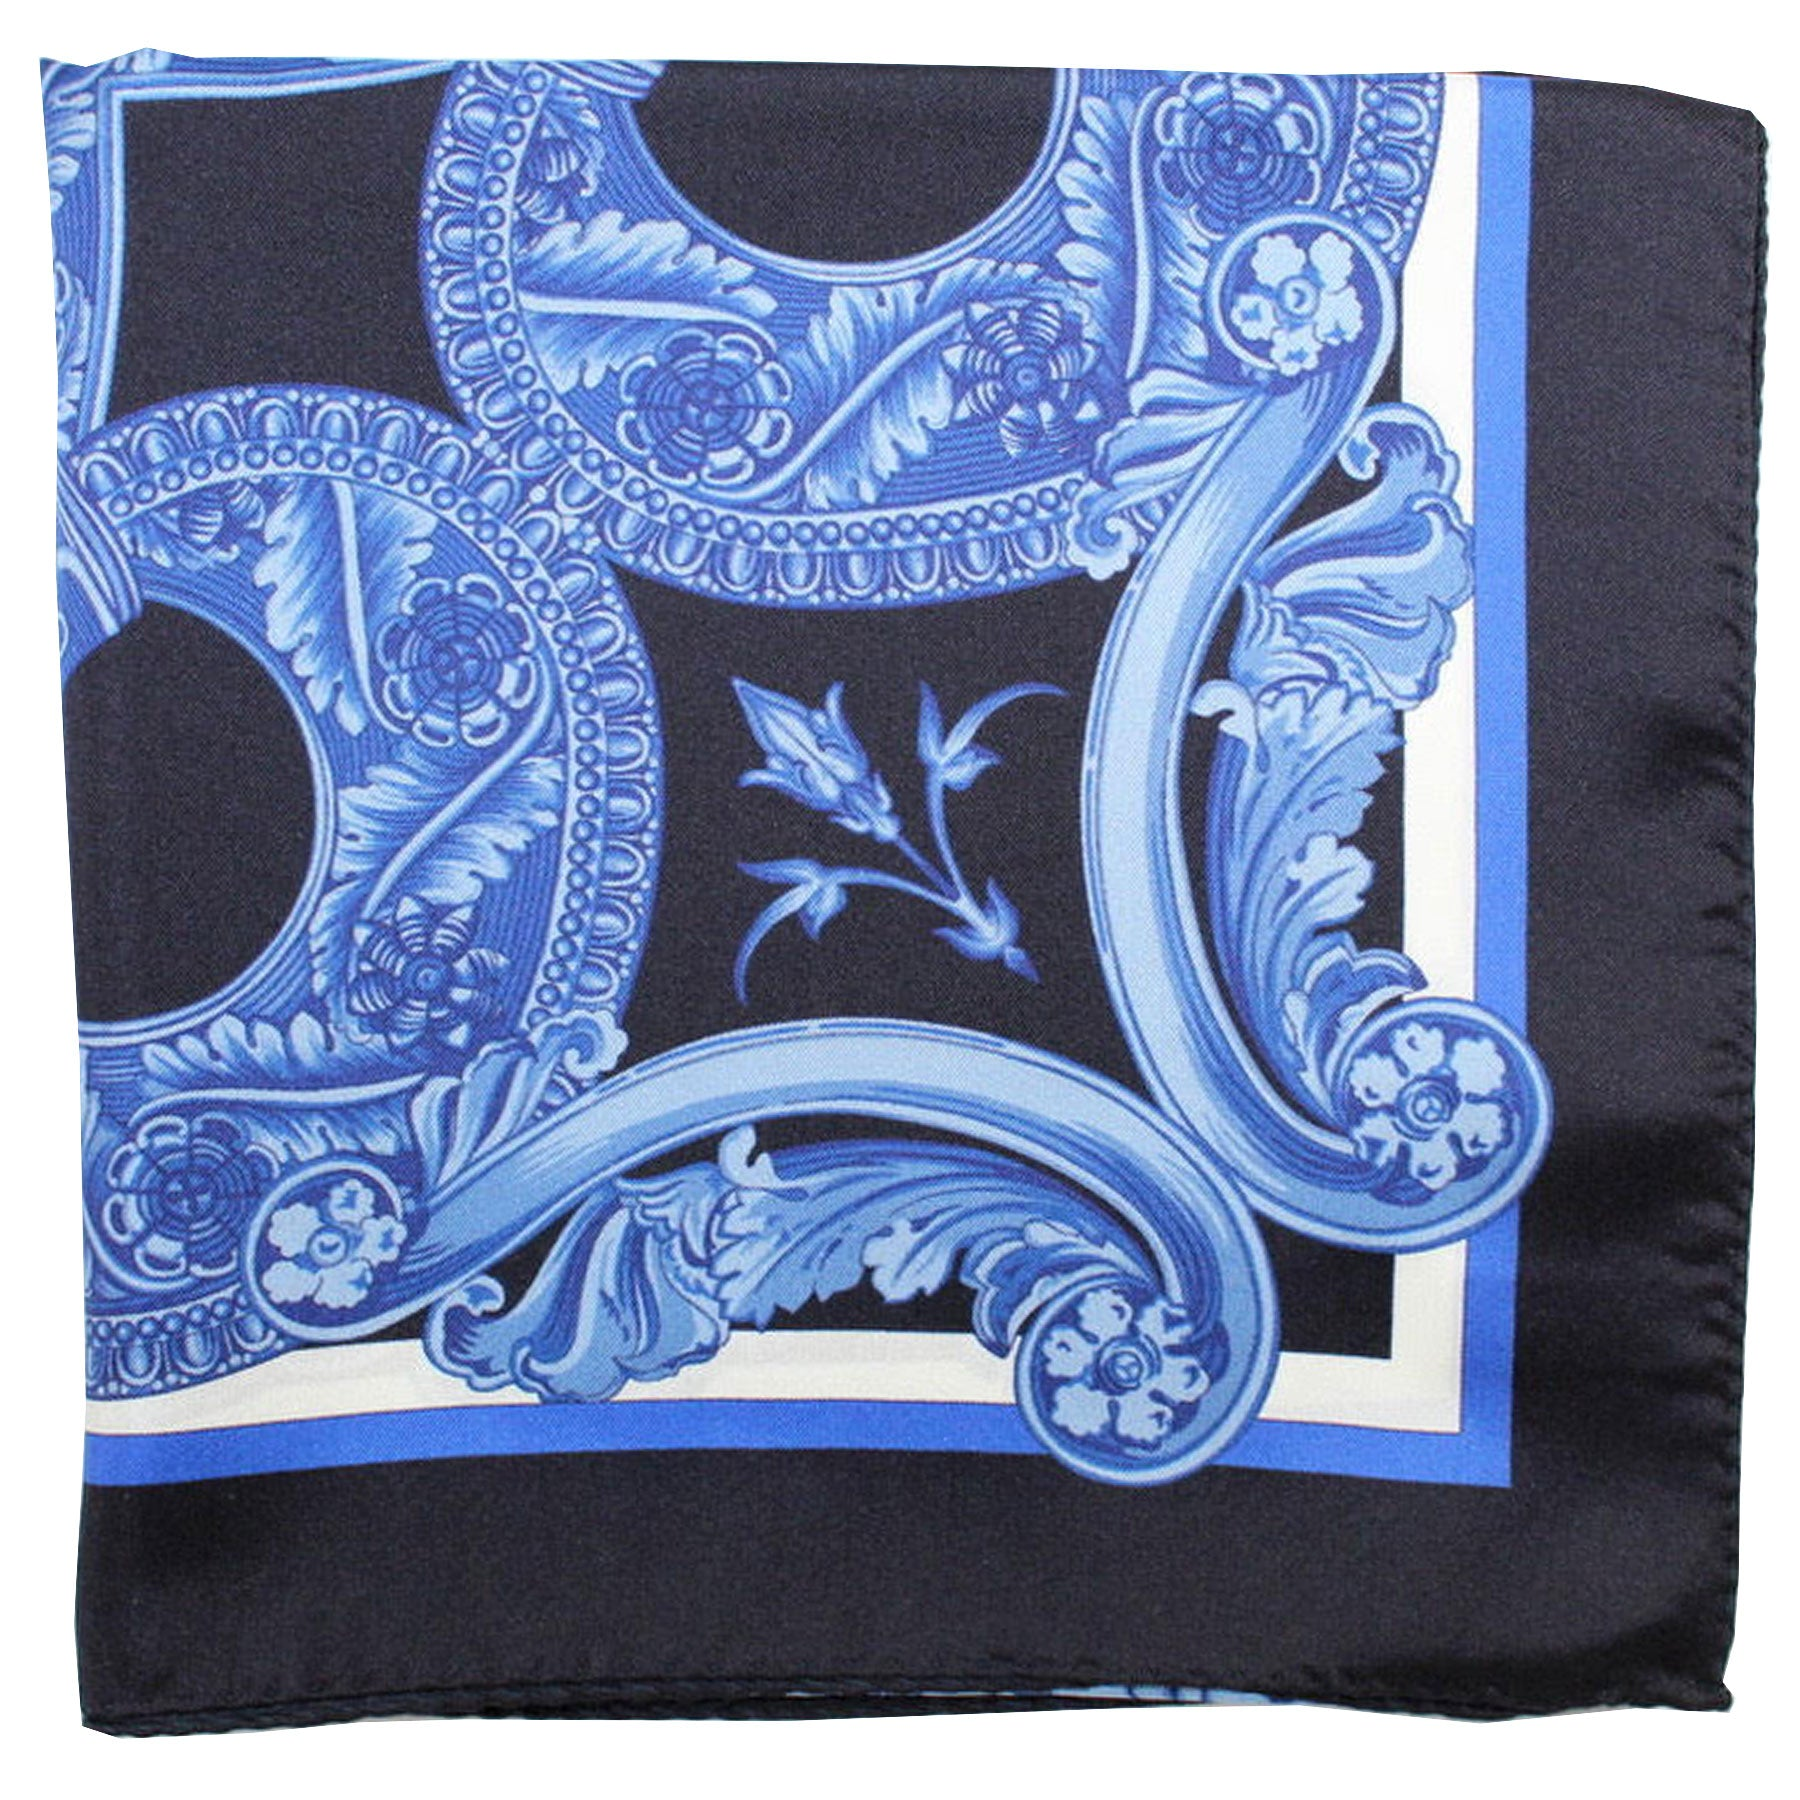 Versace Silk Scarf Navy Blue Baroque & Medusa - Large Square Scarf